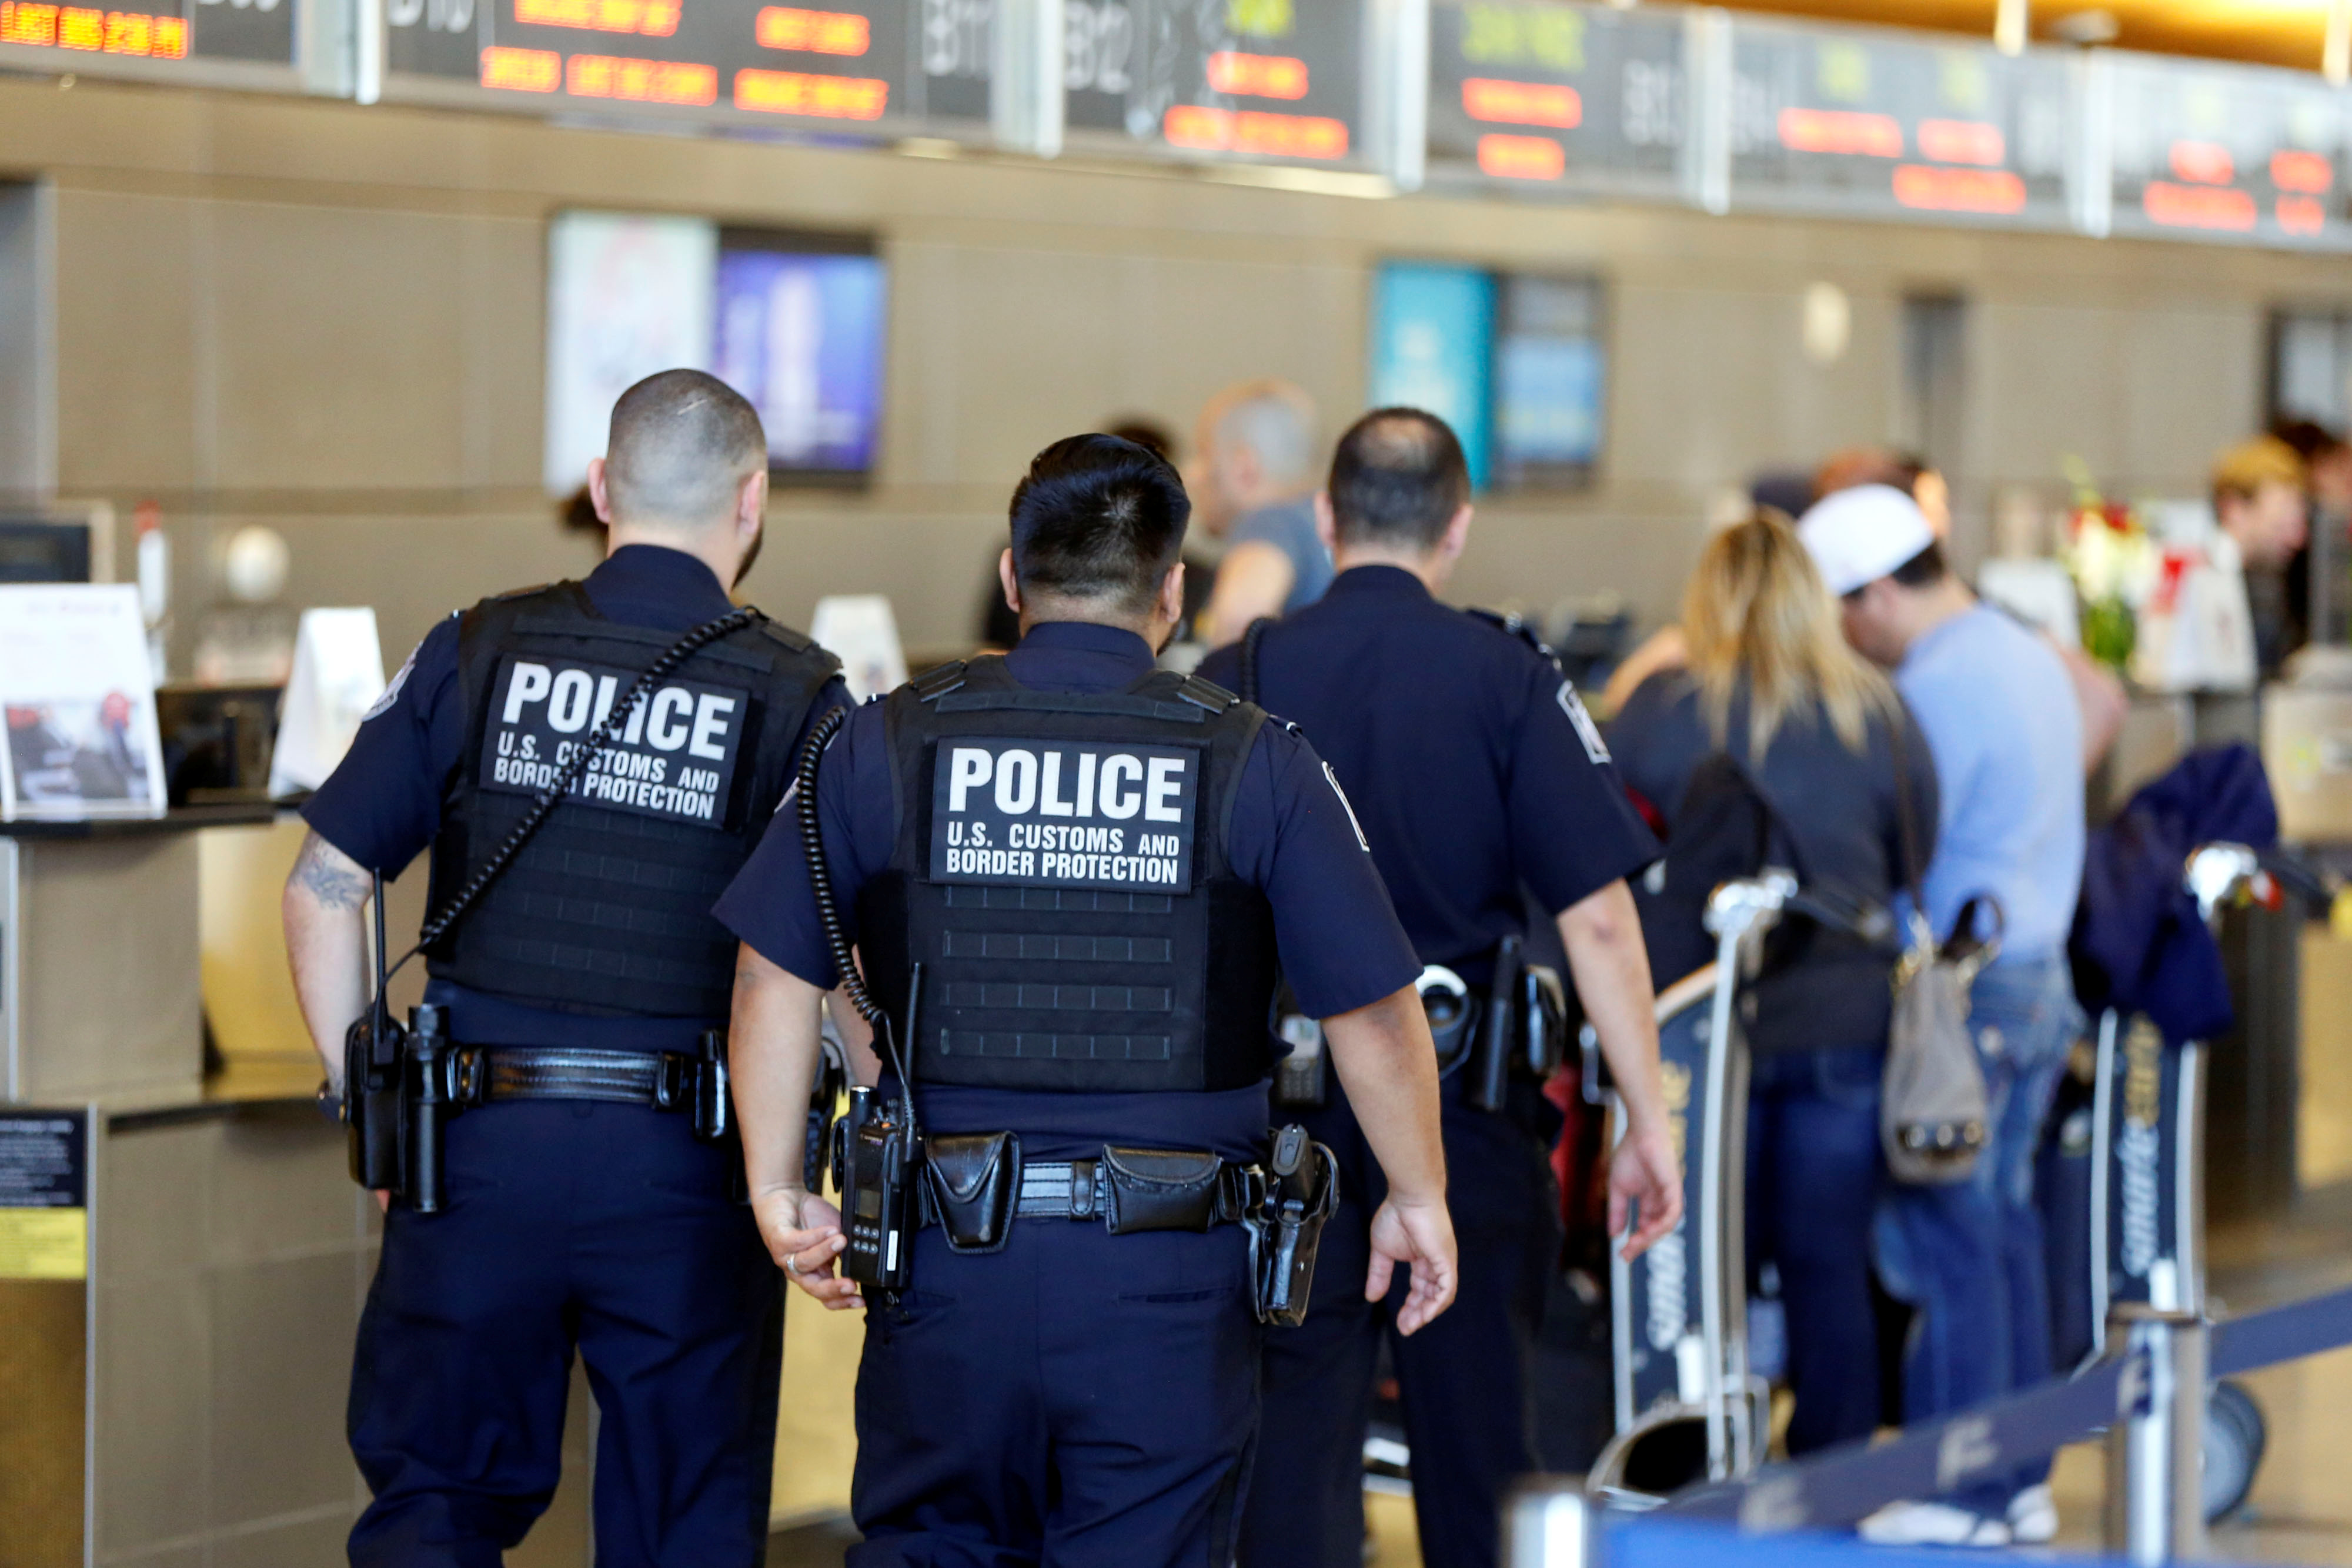 Officers with US Customs and Border Protection walk past ticket counters